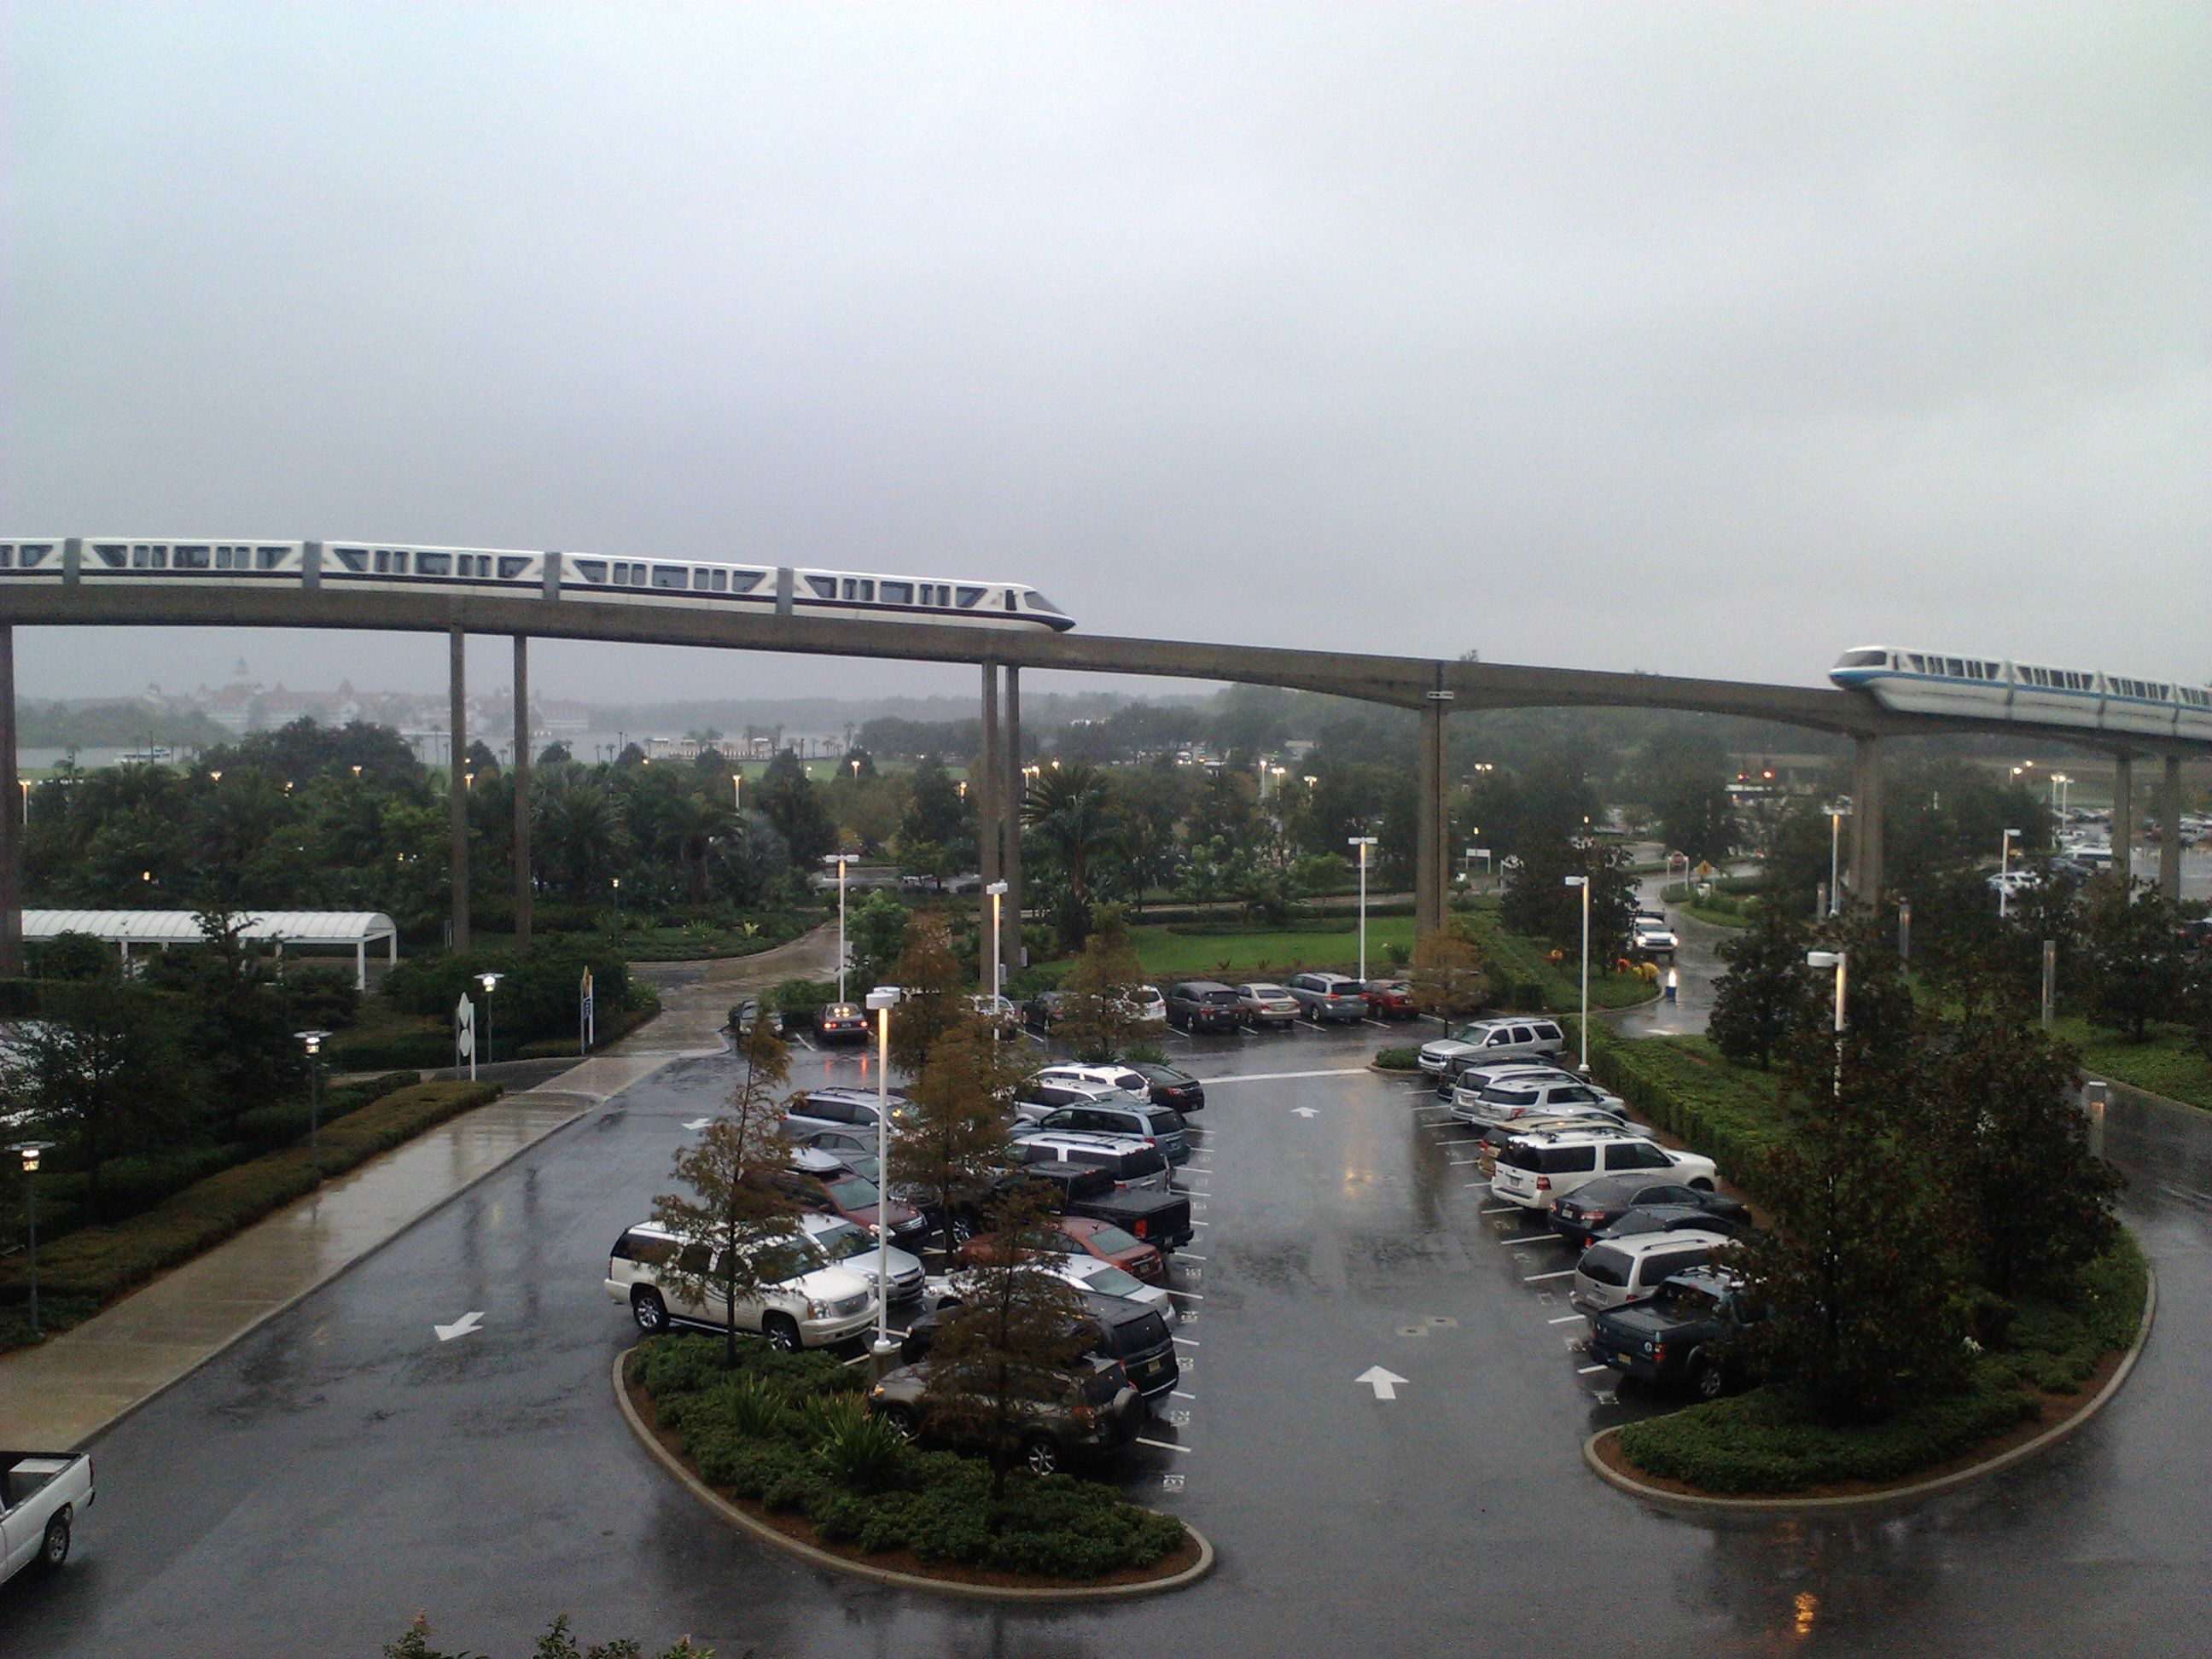 A great view even on a rainy day.